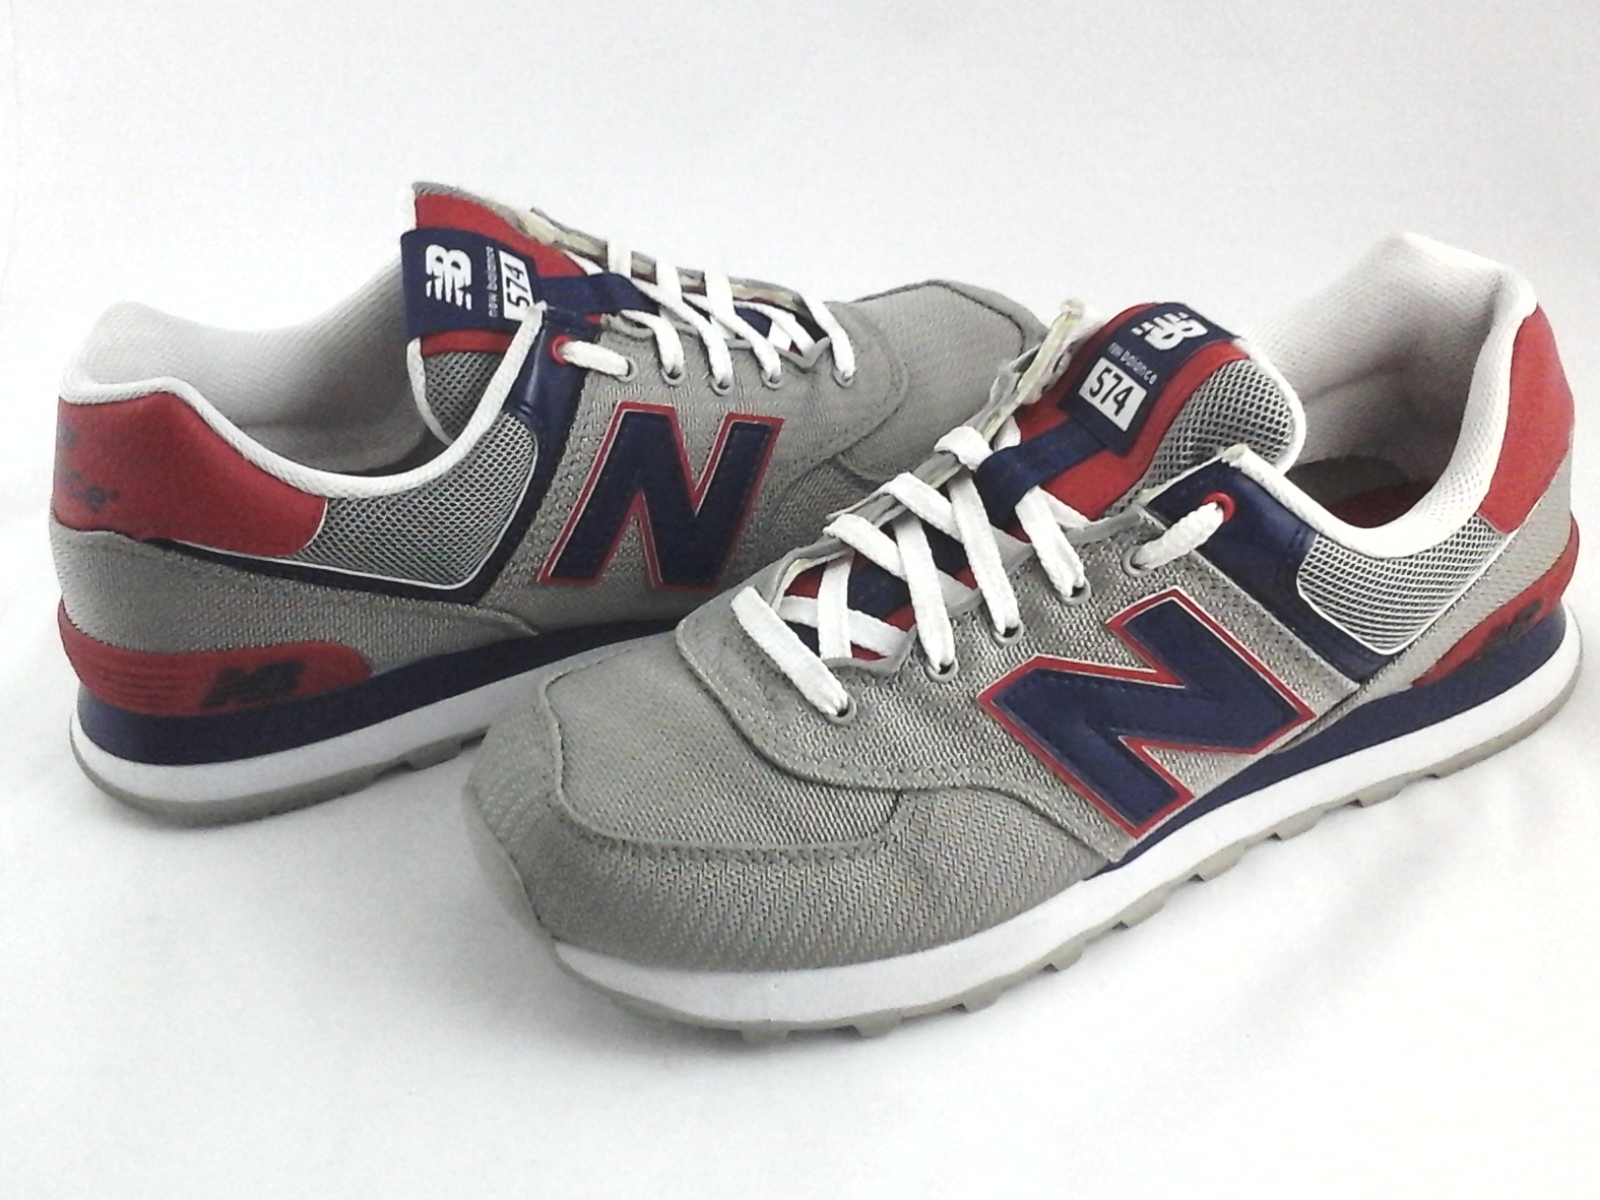 303f3256392f0 Details about NEW BALANCE Shoes 574 Encap Silver/Blue/Red Running Sneakers  Men's US 8.5 EU 42